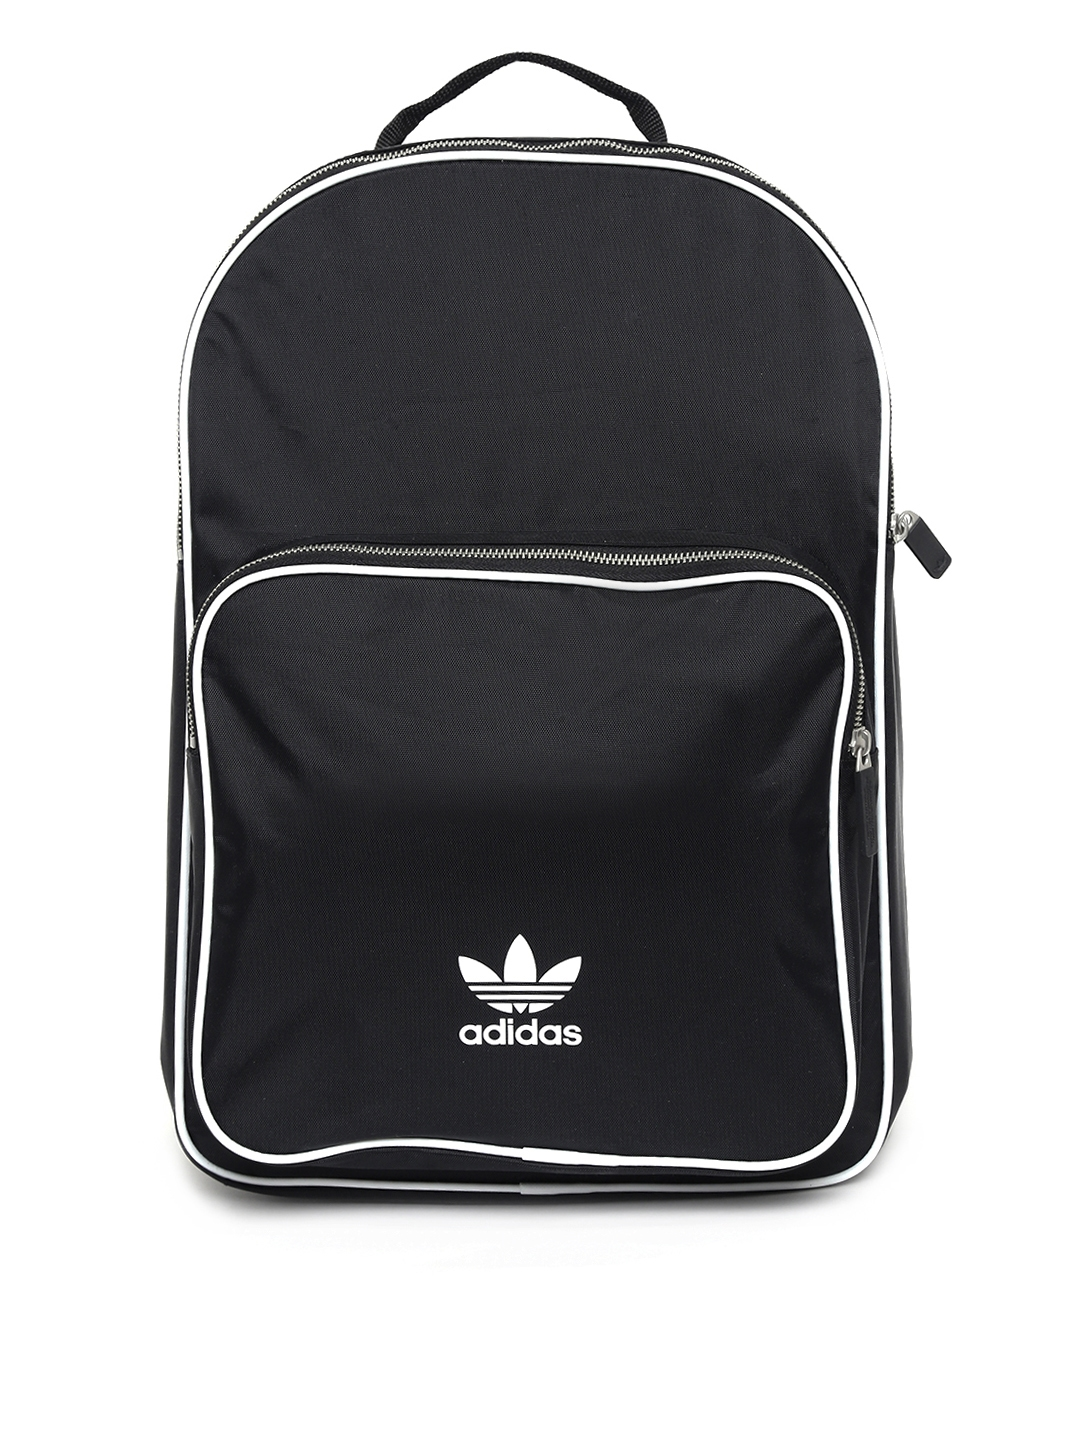 9b6bbc14b4 Buy ADIDAS Originals Unisex Black BP CL ADICOLOR Backpack ...